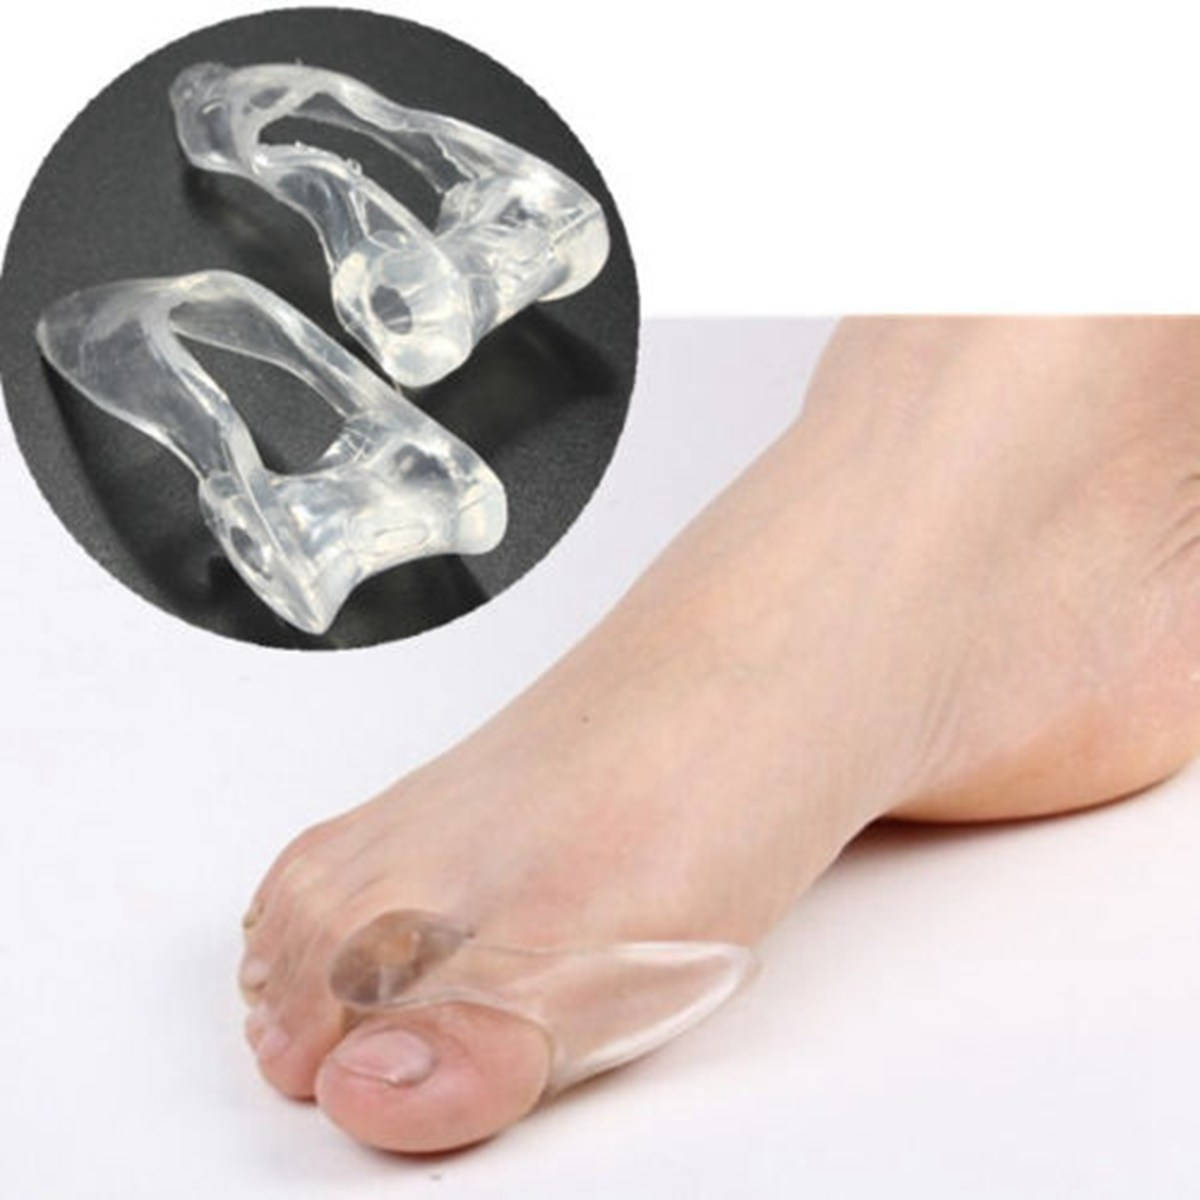 BSAID 1 Pair Foot Toe Separator Thumb Valgus Protector Bunion Adjuster Gel Silicone Soft Toes Corrector Pads Shoe Insert Insole цена